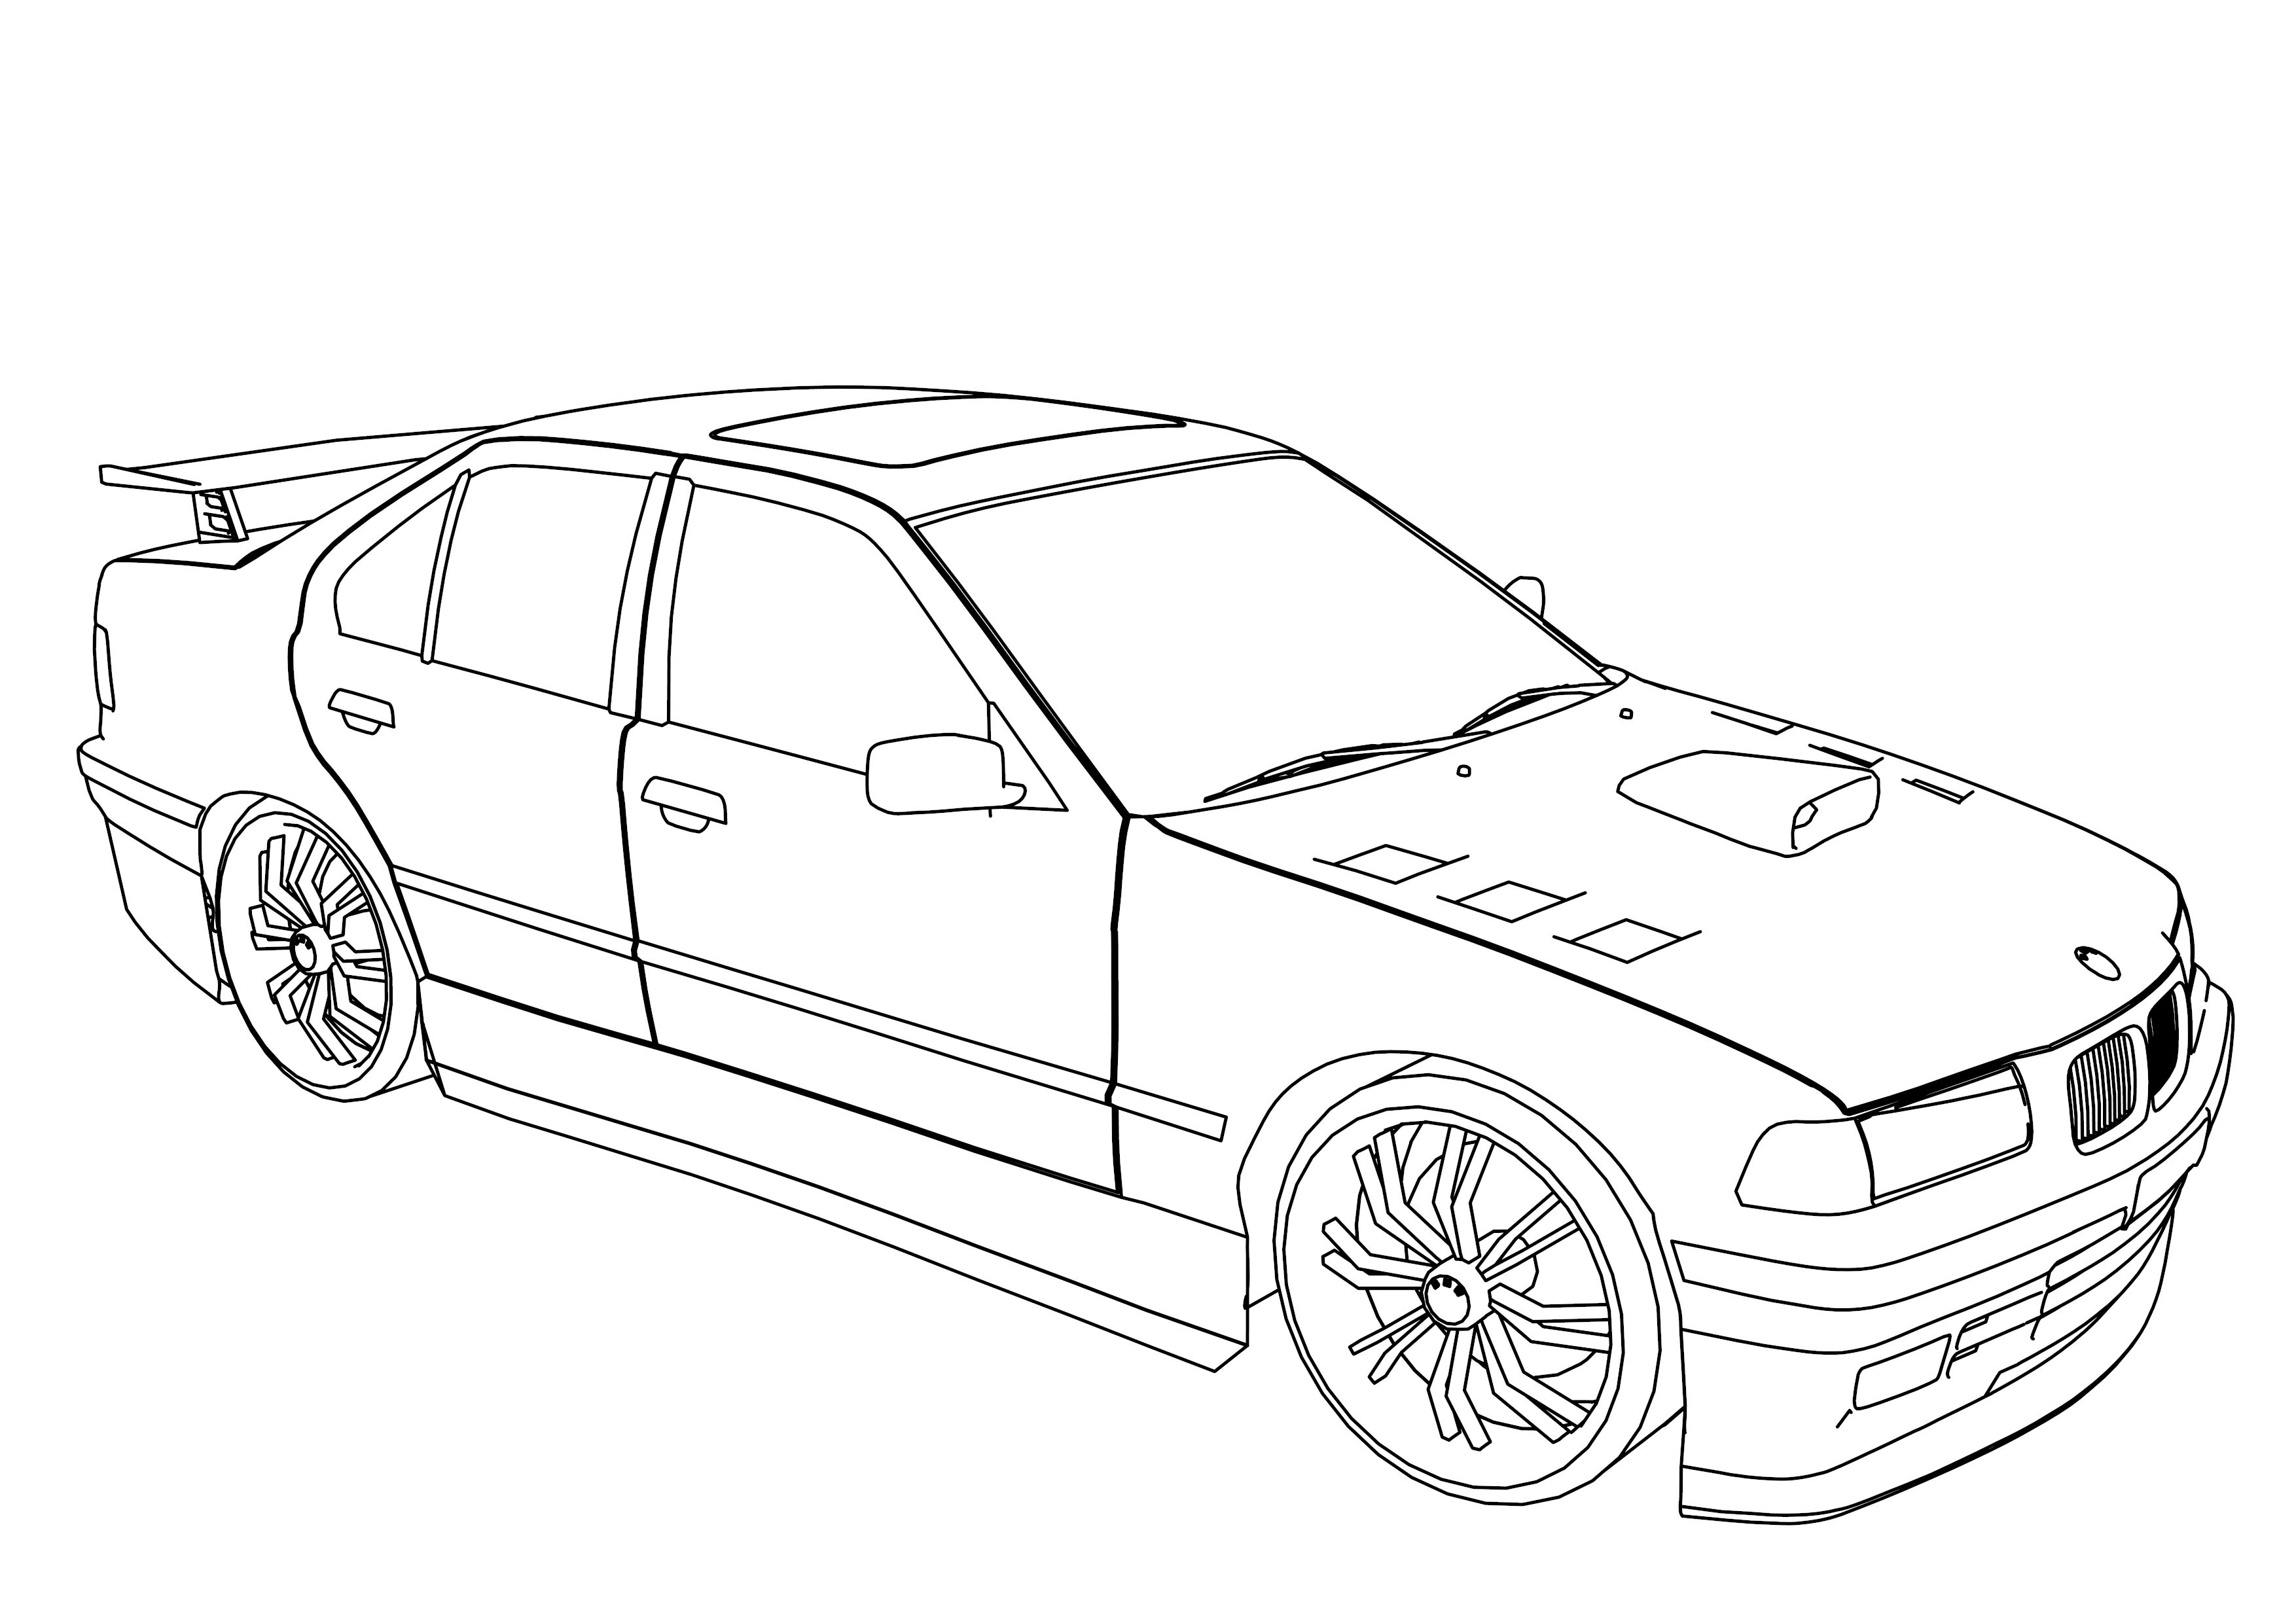 Auto Ausmalbilder Bmw : Car Images Drawing At Getdrawings Com Free For Personal Use Car